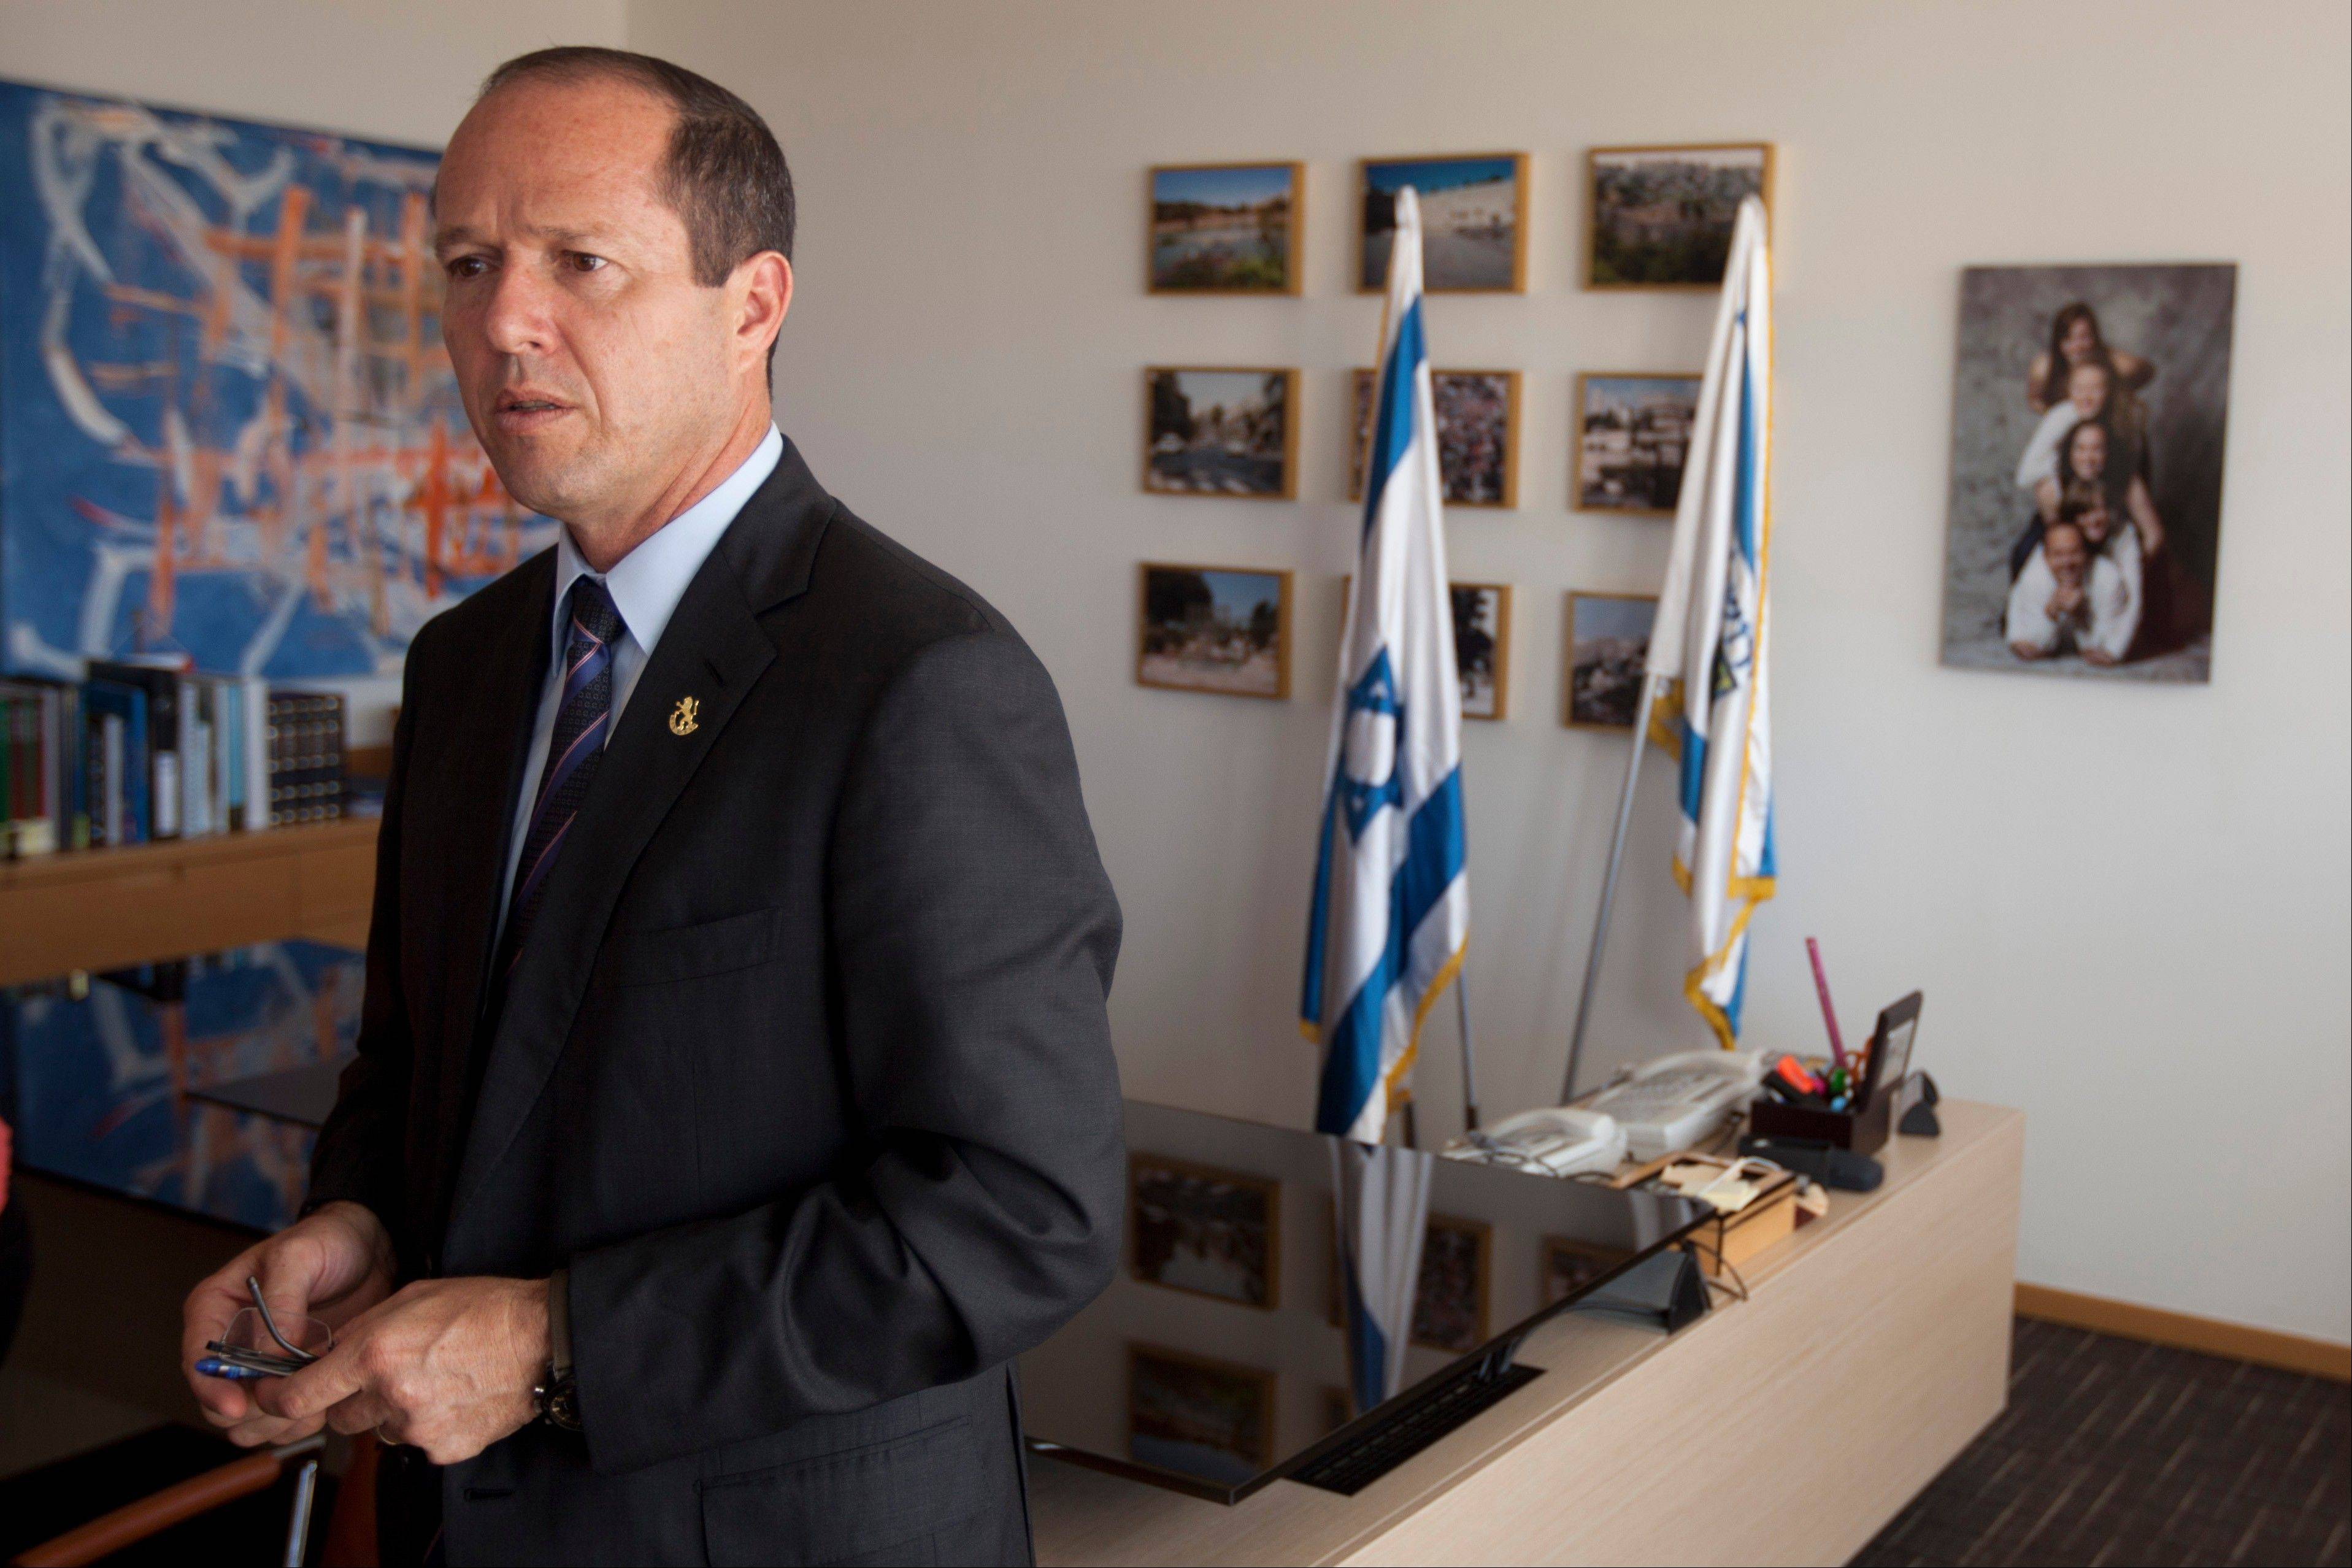 Jerusalem Mayor Nir Barkat said any partition of the city as part of a future peace agreement will not work, insisting only a united city could function and thrive.